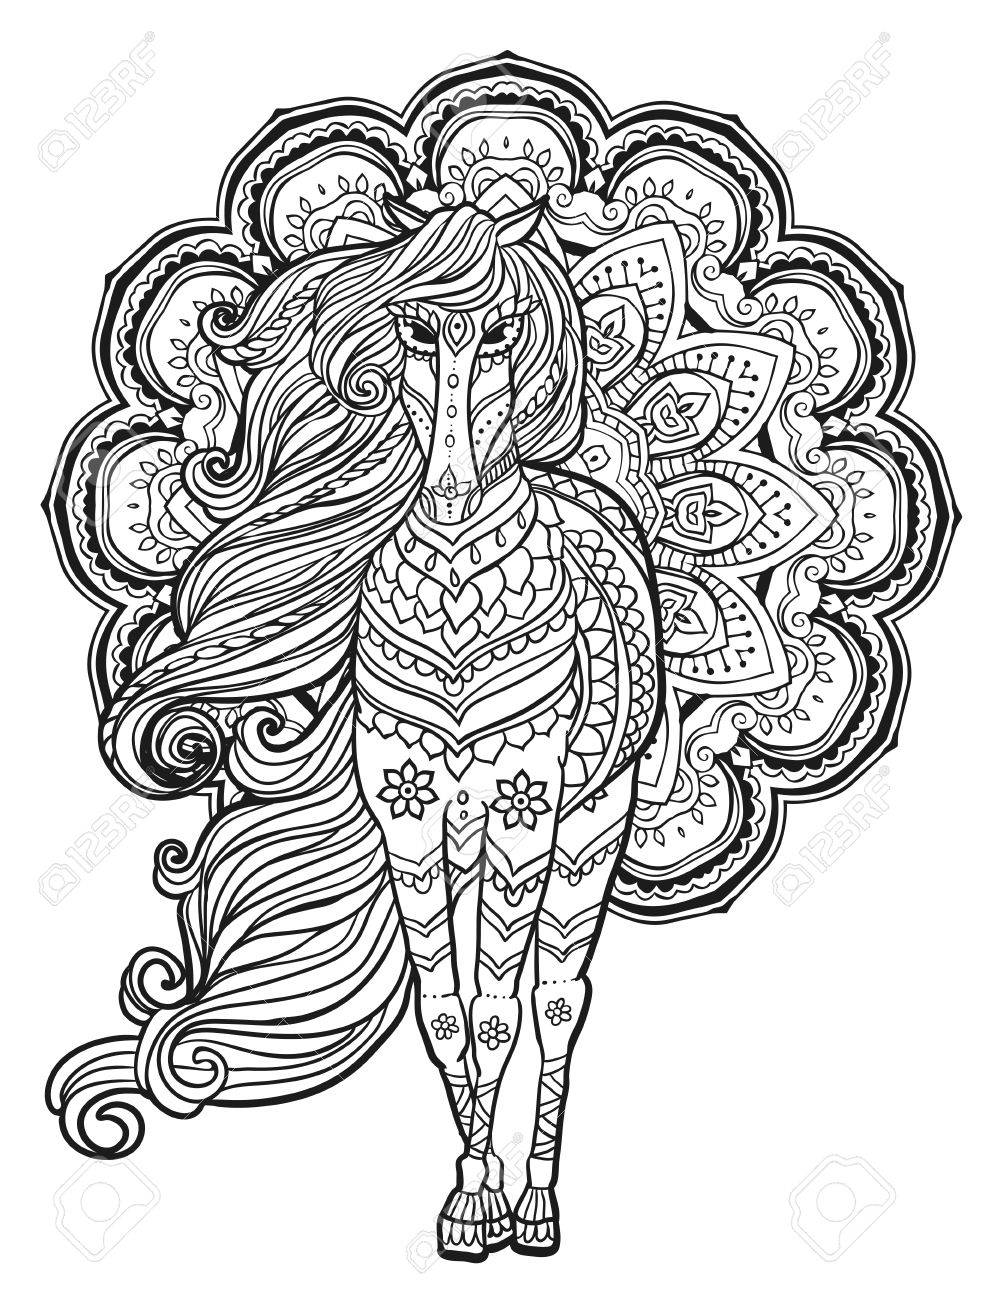 Ornament Horse Vector Beautiful Illustration For Design Print Clothing Stickers Tattoos